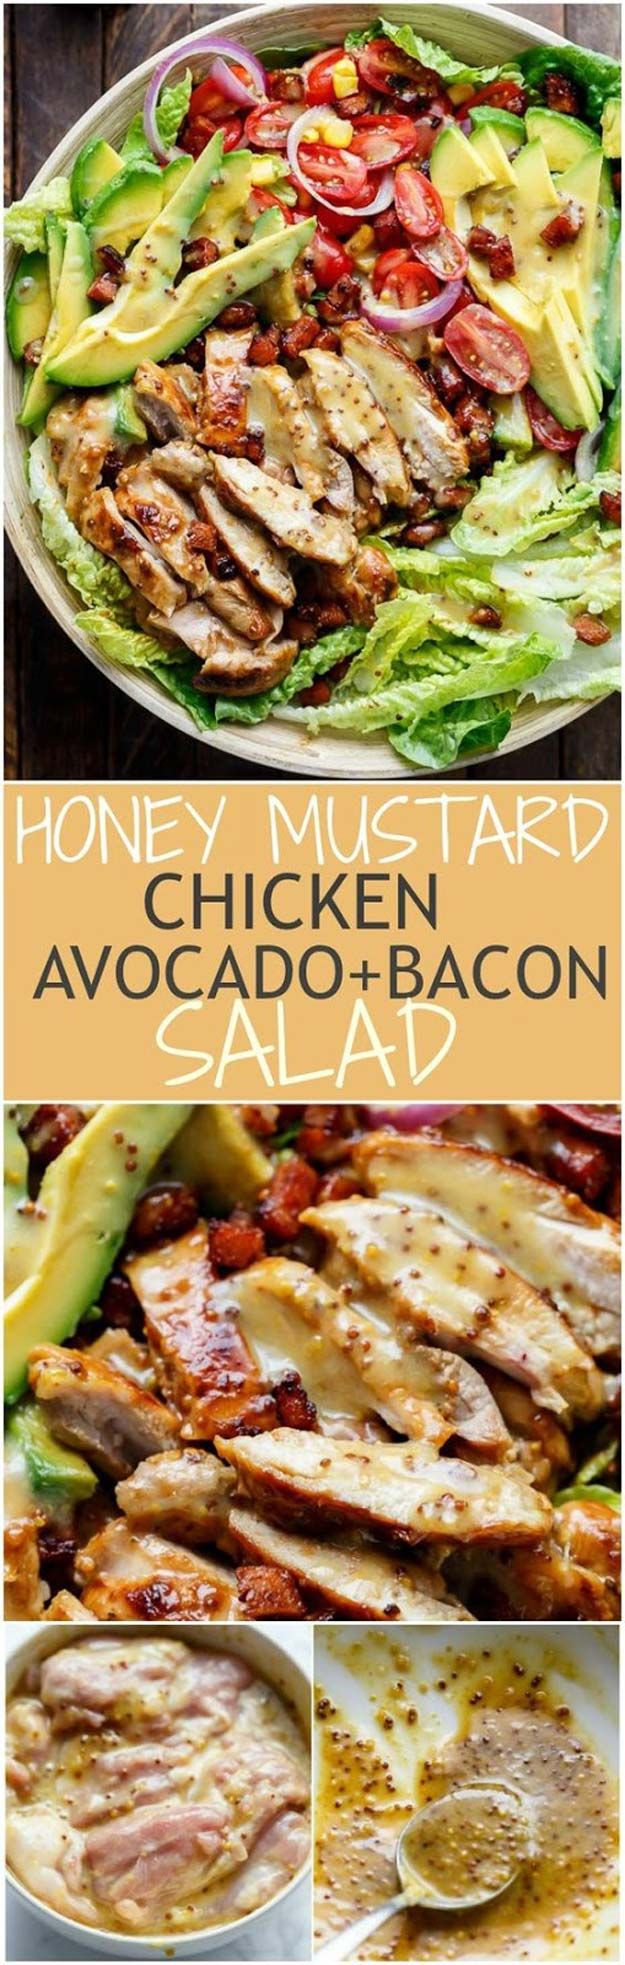 Healthy Avocado Recipes - Honey Mustard Chicken, Avocado + Bacon Salad - Easy Clean Eating Recipes for Breakfast, Lunches, Dinner and even Desserts - Low Carb Vegetarian Snacks, Dip, Smothie Ideas and All Sorts of Diets - Get Your Fitness in Order with these awesome Paleo Detox Plans - thegoddess.com/healthy-avocado-recipes